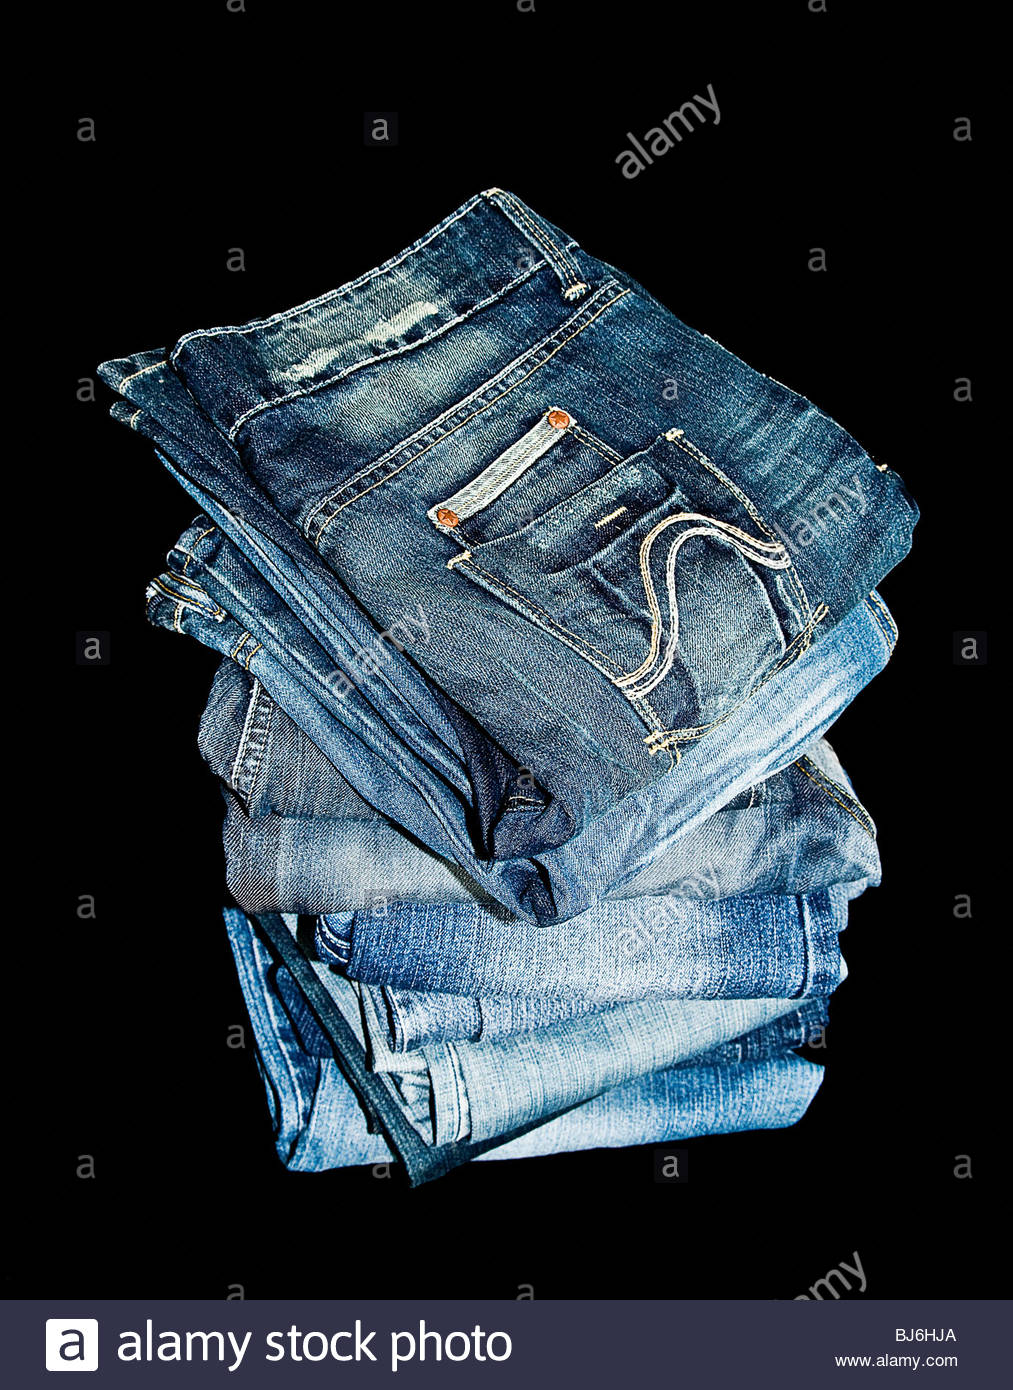 Pile of blue denim jeans - Stock Image